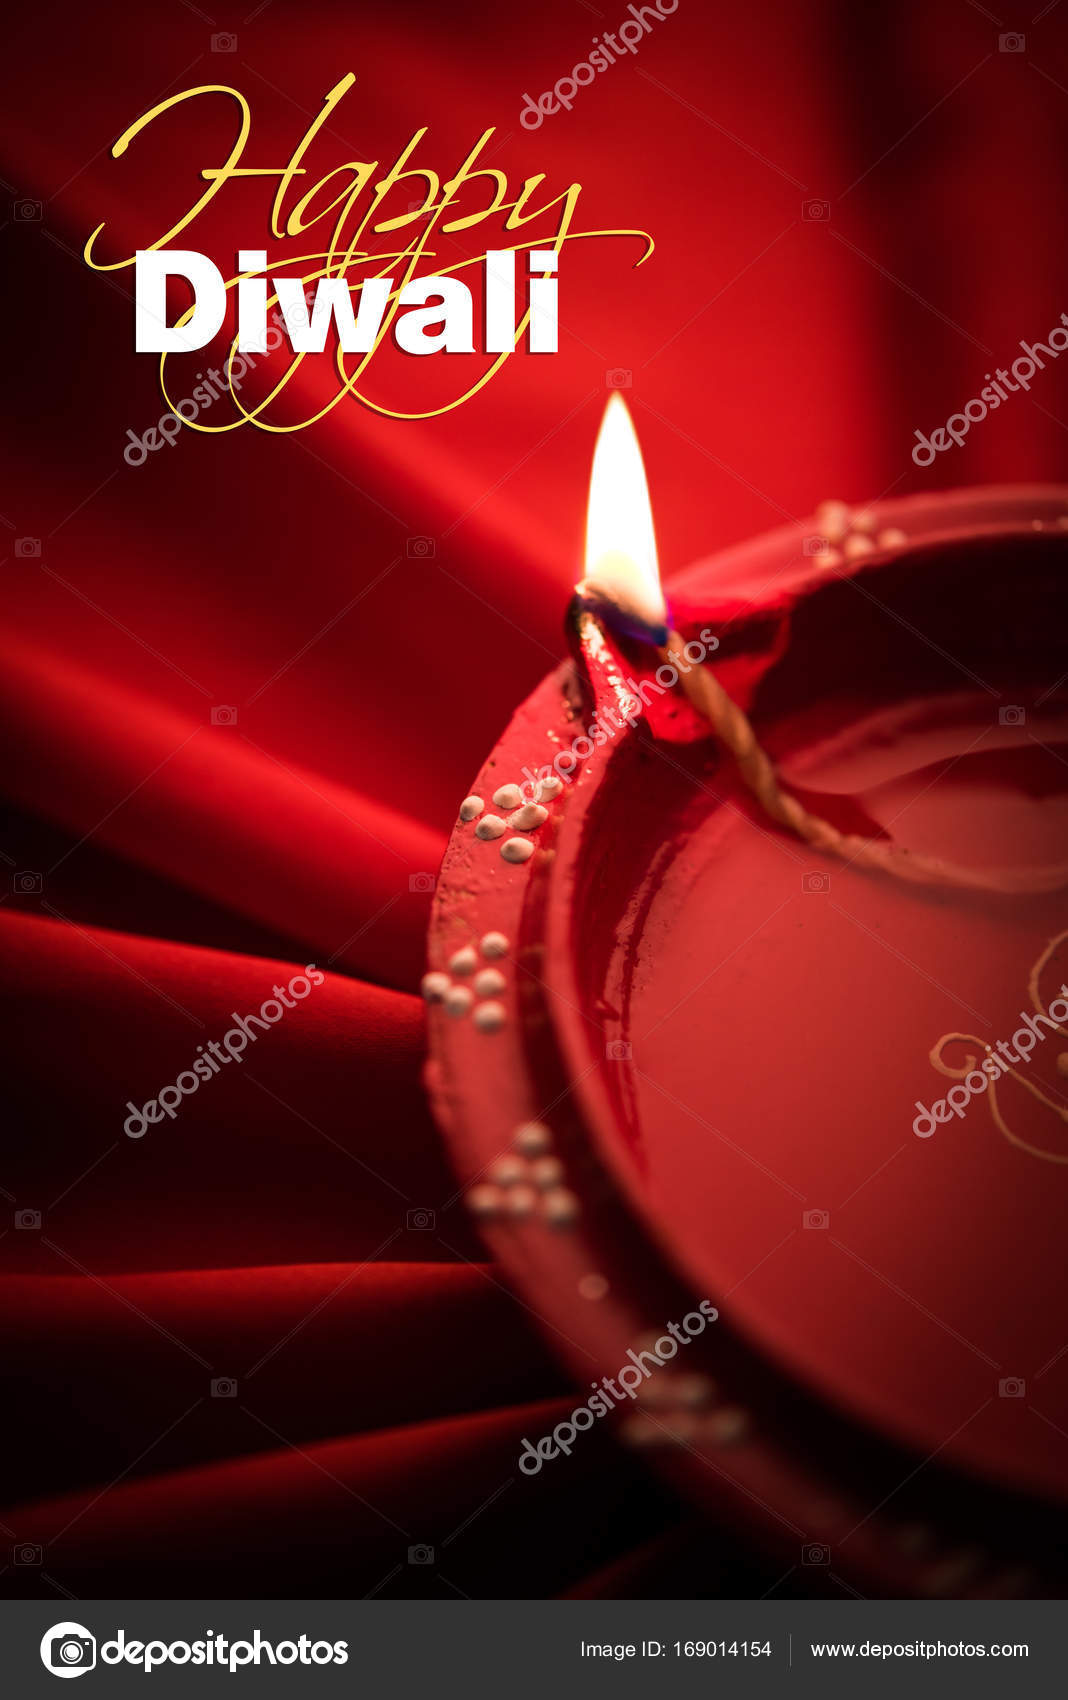 Happy Diwali Greeting Card Big Illuminated Diwali Diya Or Clay